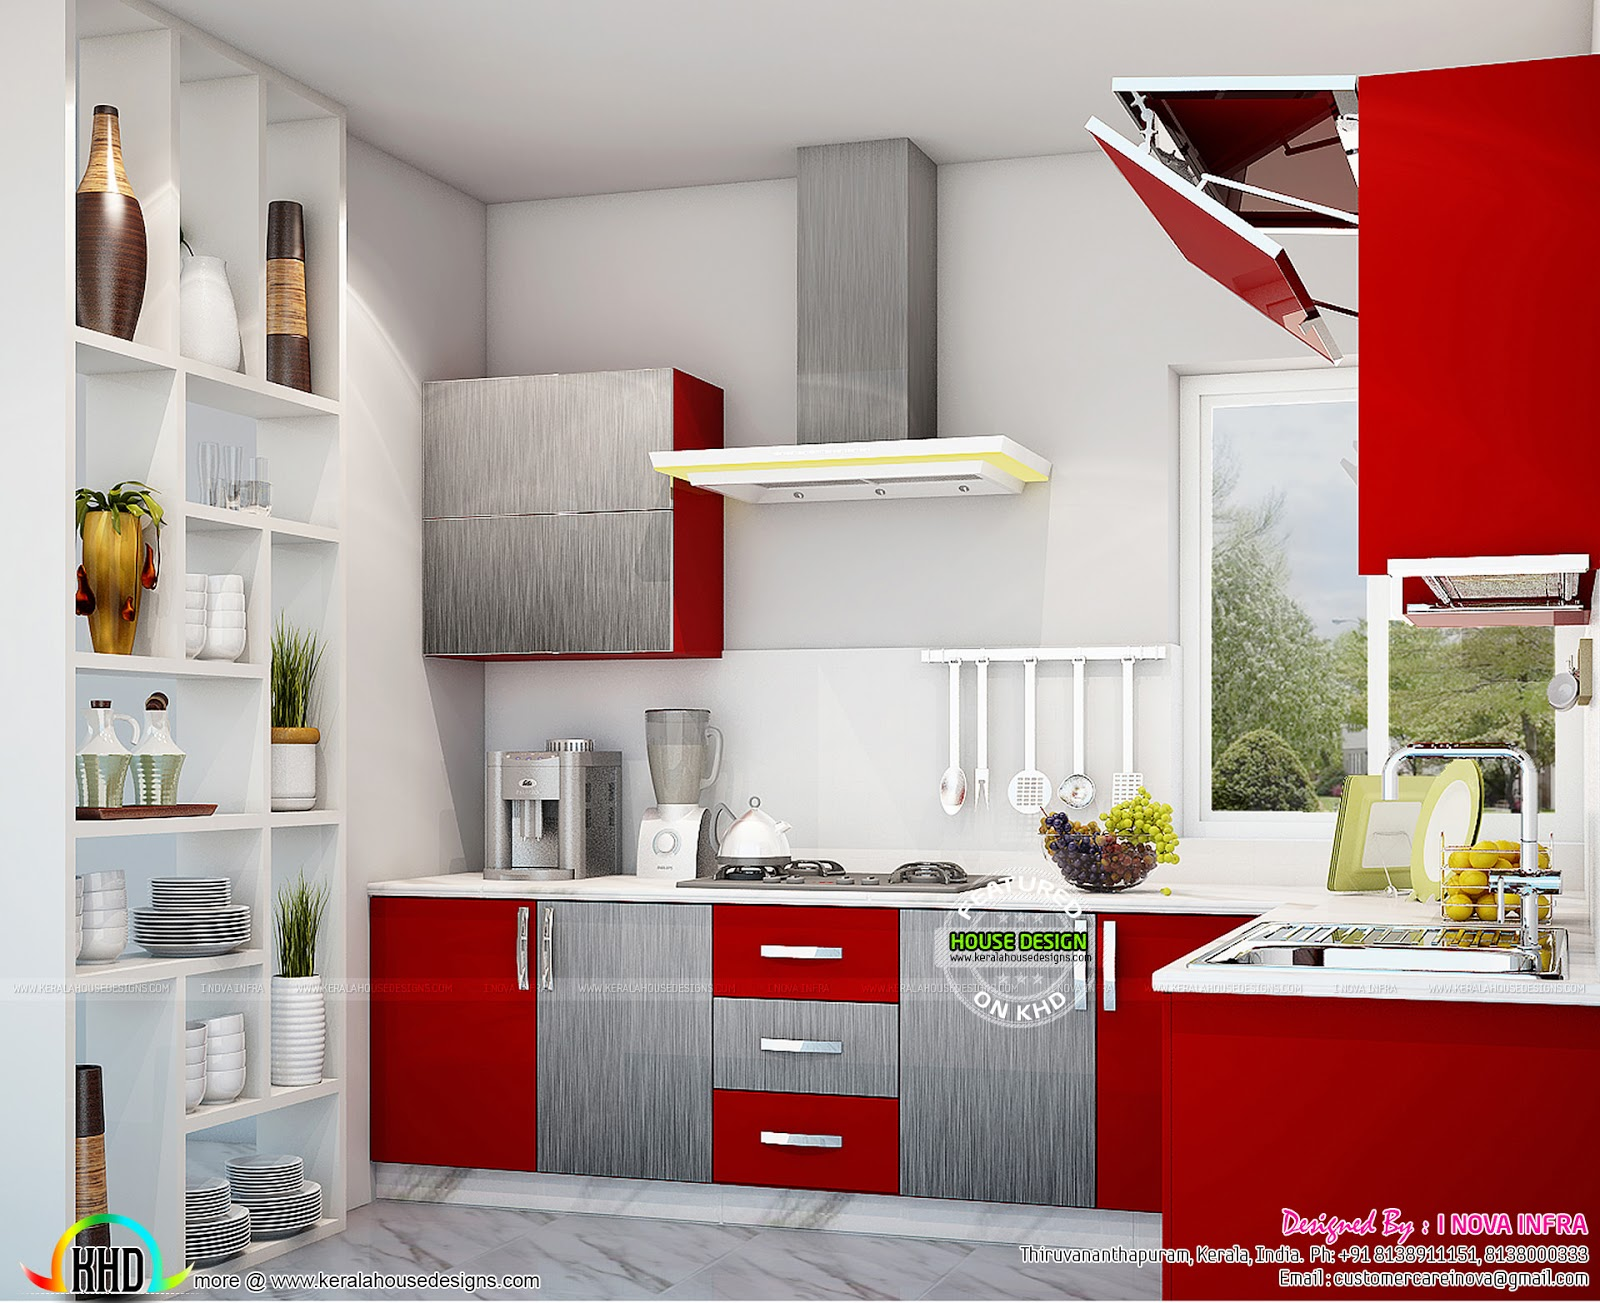 kitchen interior works at trivandrum kerala home design kitchen design images dgmagnets com